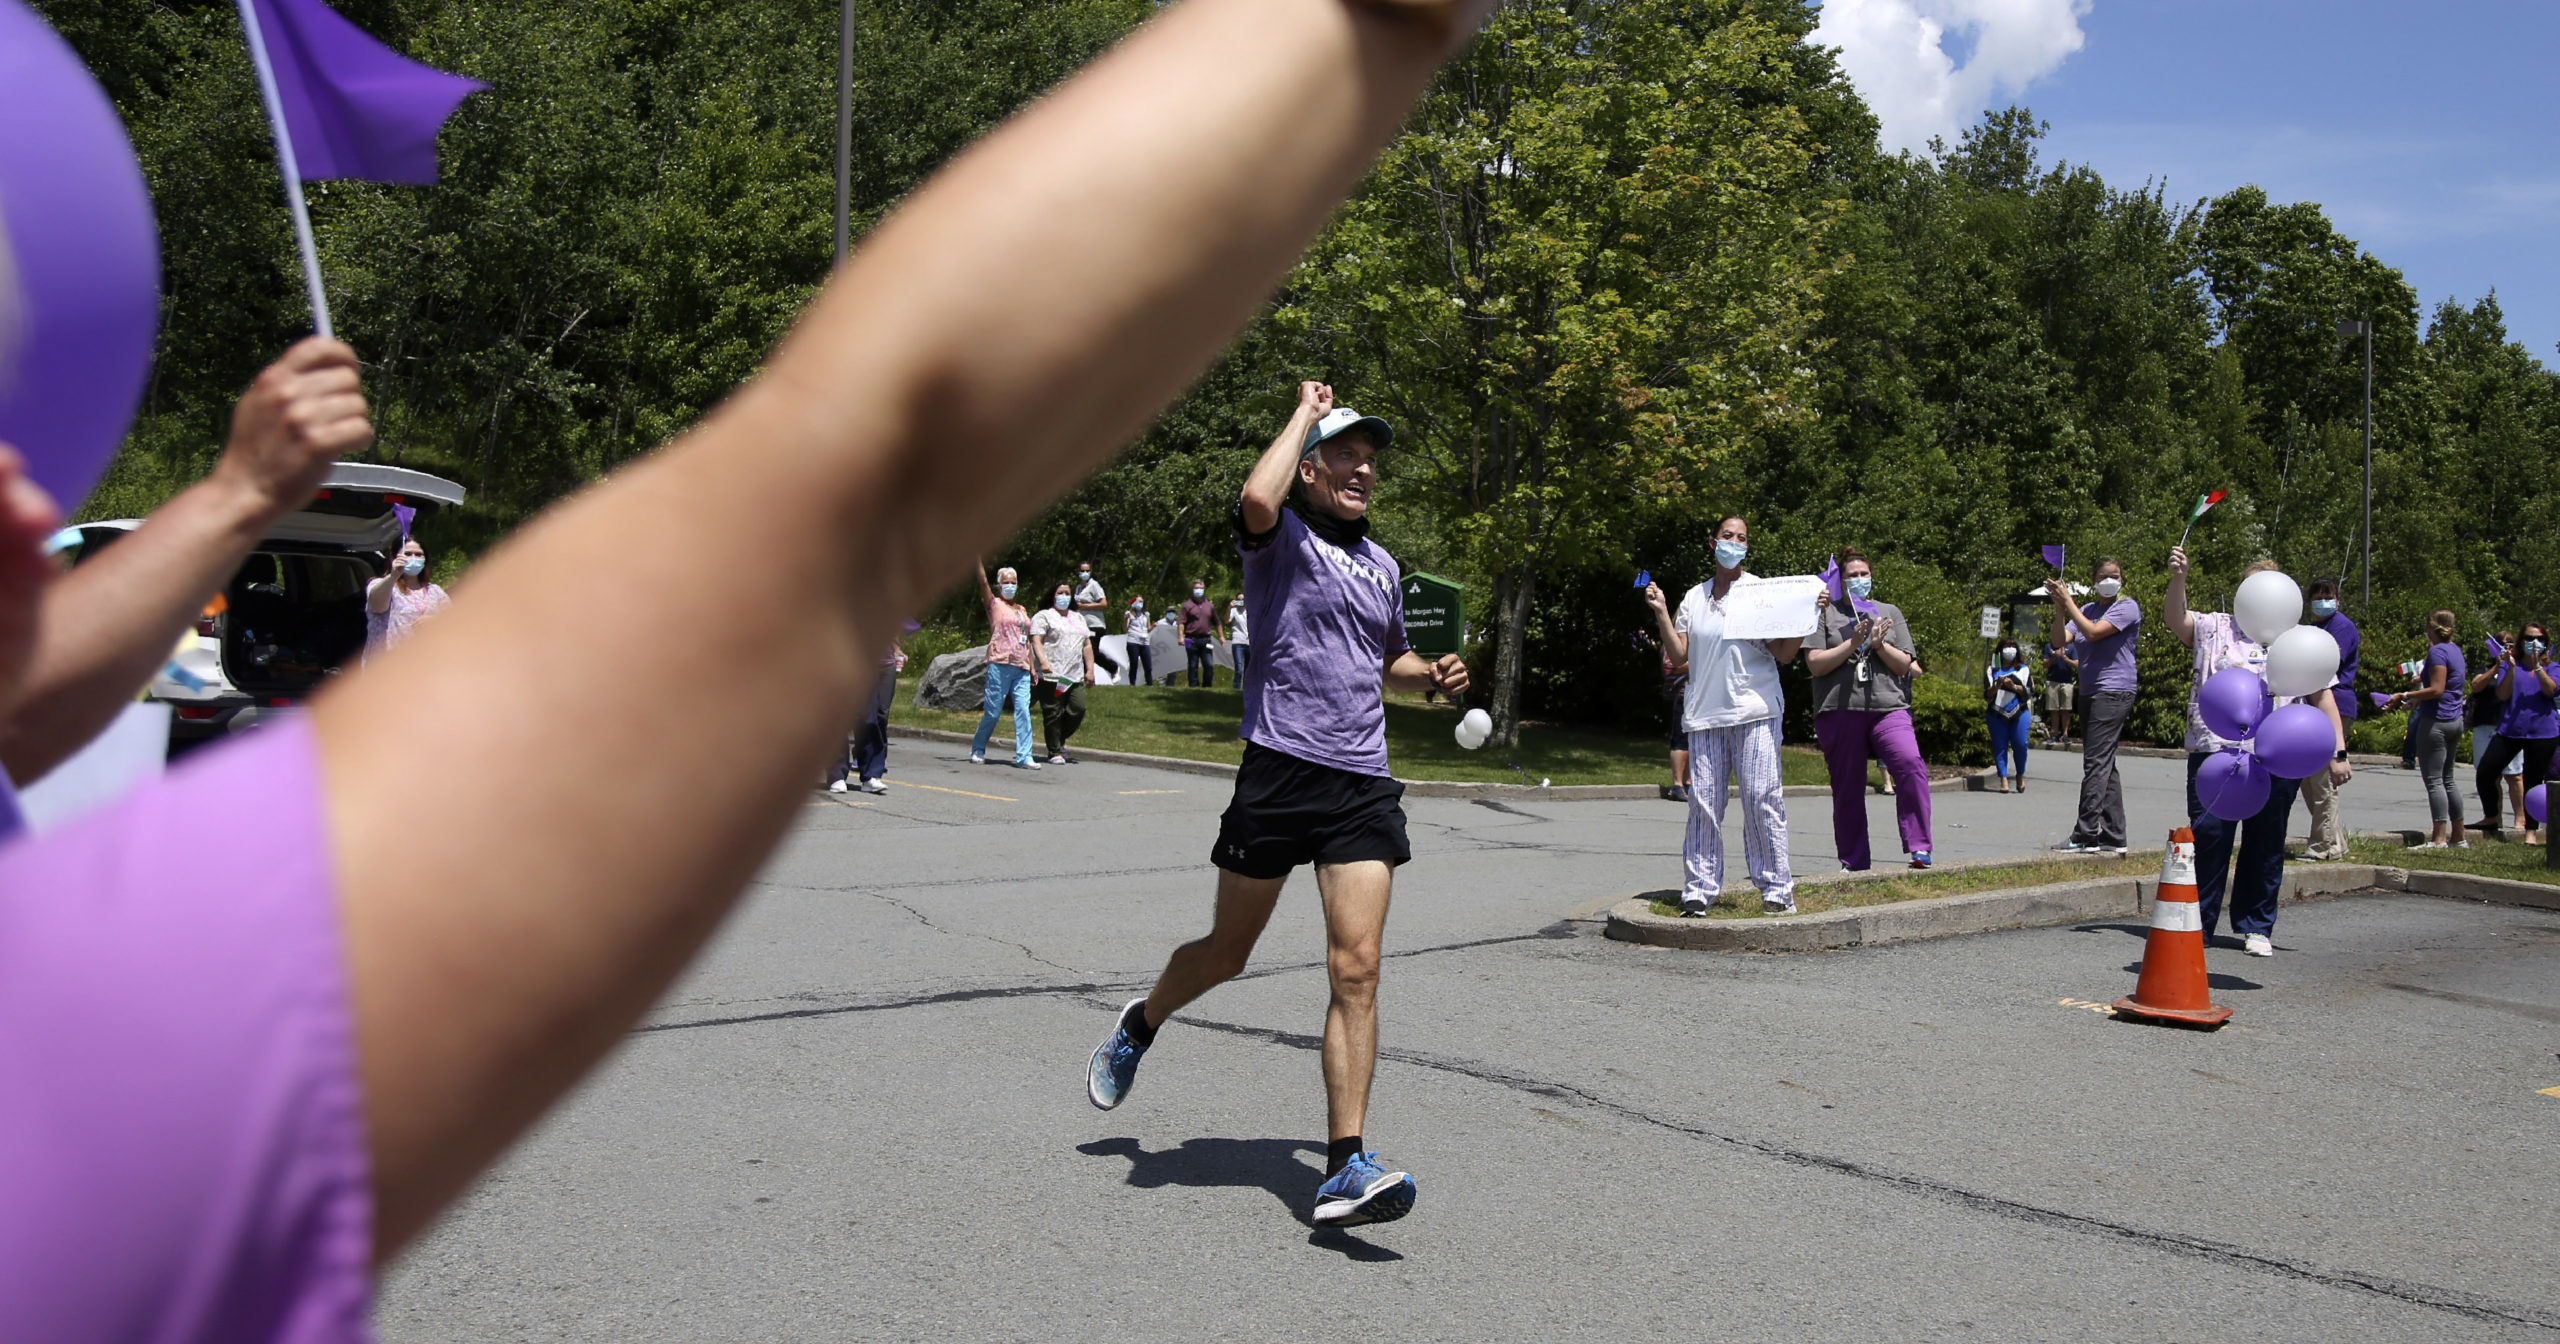 Nursing home workers cheer as Corey Cappelloni completes his seventh ultramarathon in seven days in Scranton, Pennsylvania, on June 19, 2020. Cappelloni ran roughly 218 miles from Washington, D.C., to Scranton to visit his 98-year-old grandmother and raise awareness for patients in isolation amid the coronavirus pandemic.